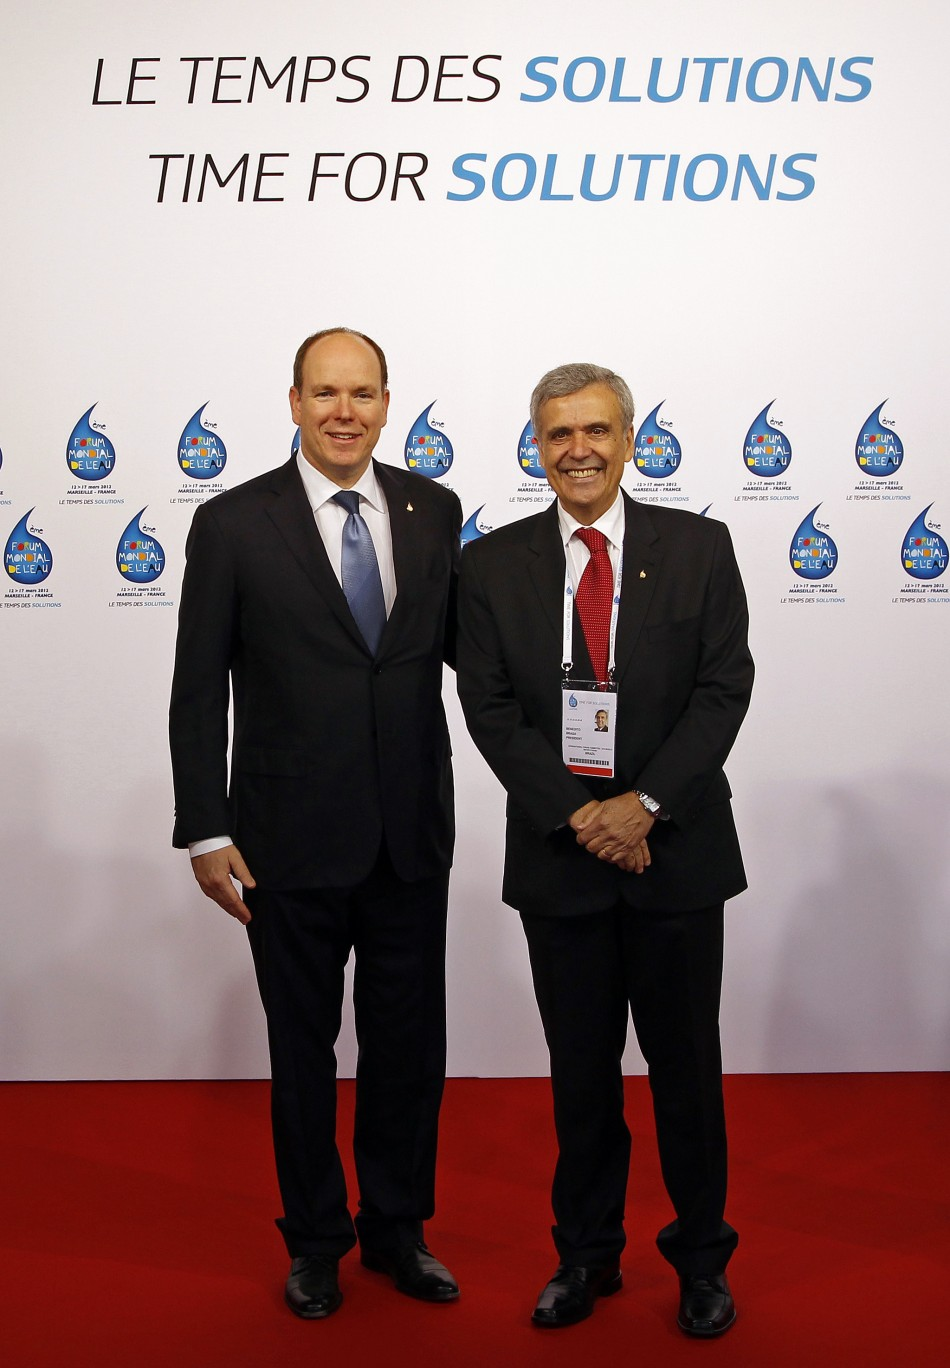 Prince Albert of Monaco poses with President of the International Forum Committee Braga as they arrive at the 6th World Water Forum in Marseille